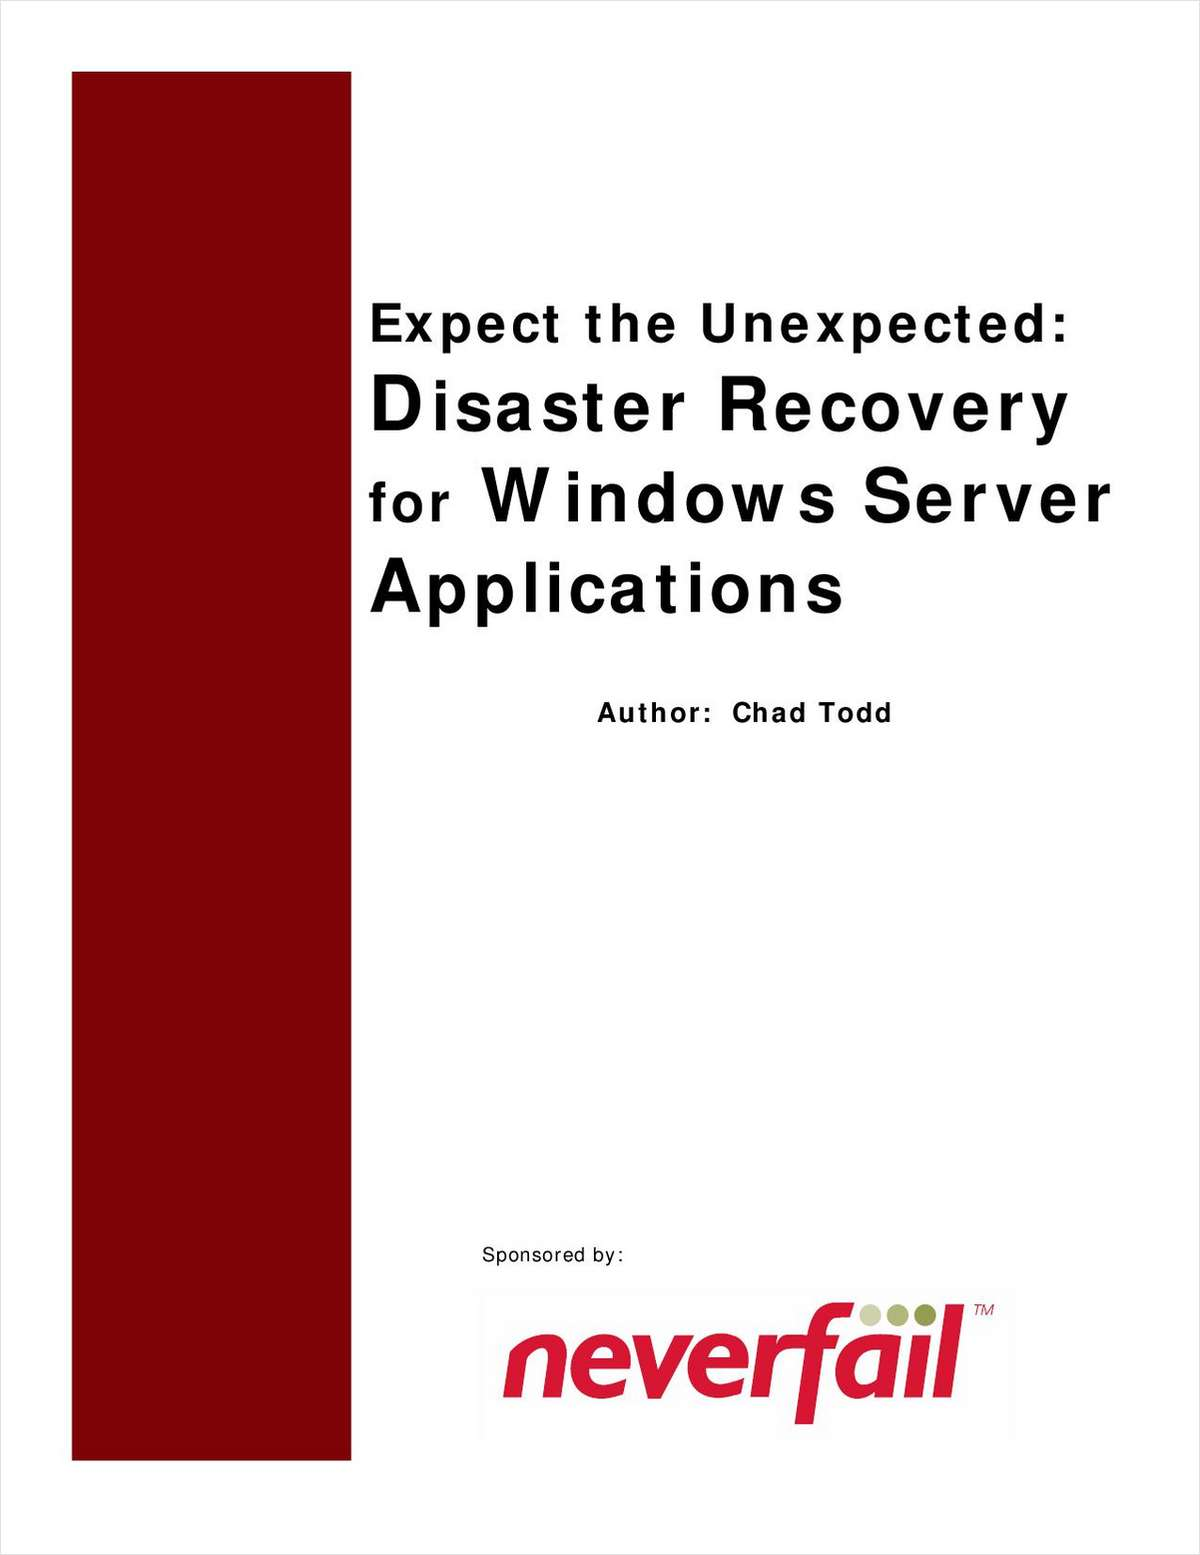 Expect the Unexpected: High Availability and Disaster Recovery for Windows Applications